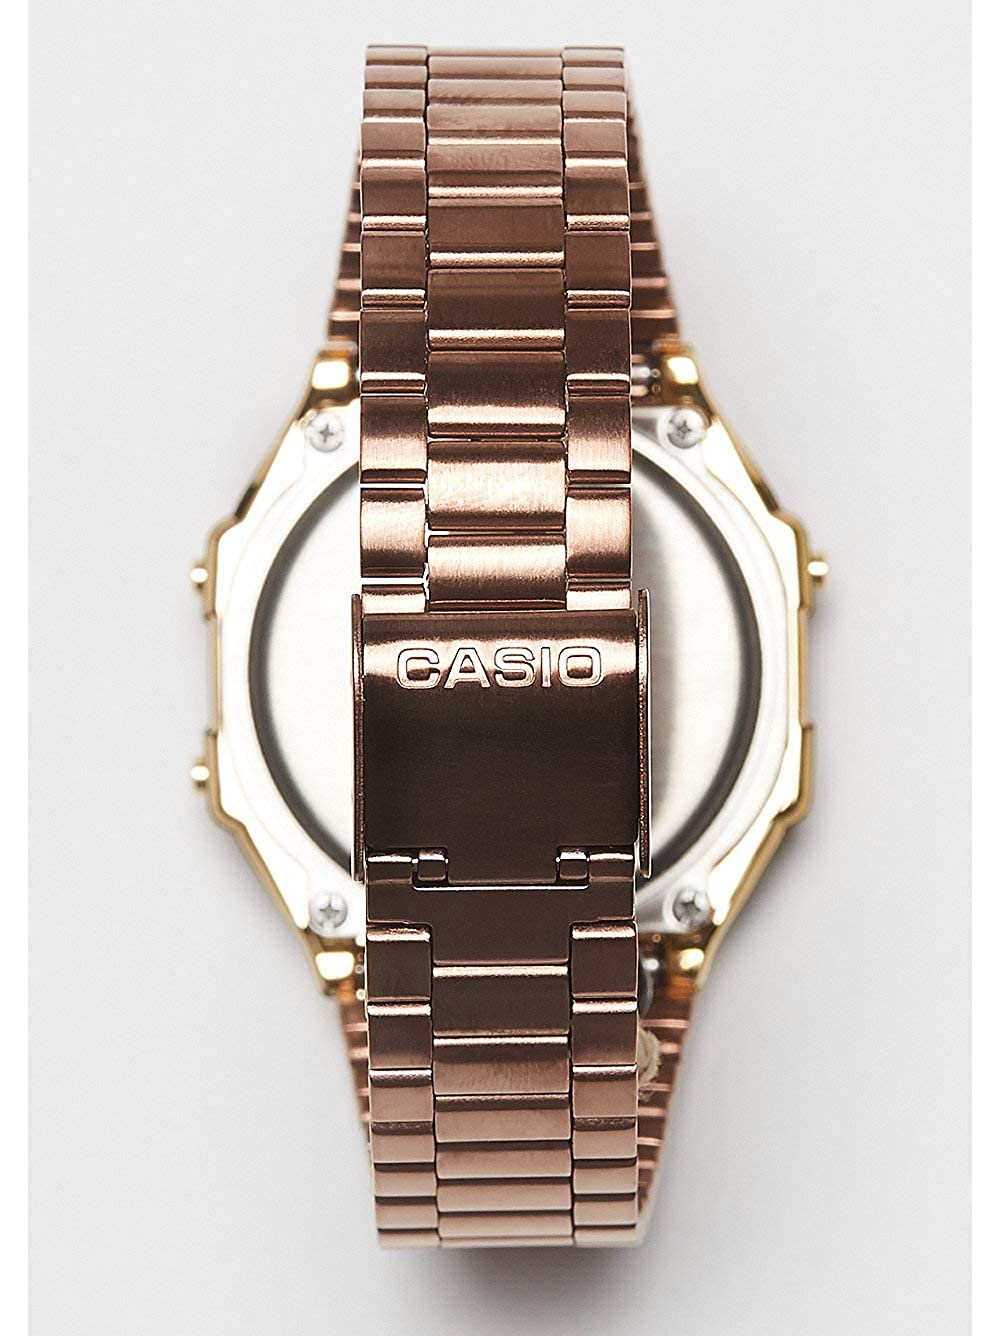 Casio Unisex Digital Quartz Watch with Stainless Steel Strap A168WECM-5EF   Amazon.co.uk  Watches 3119e8f36e